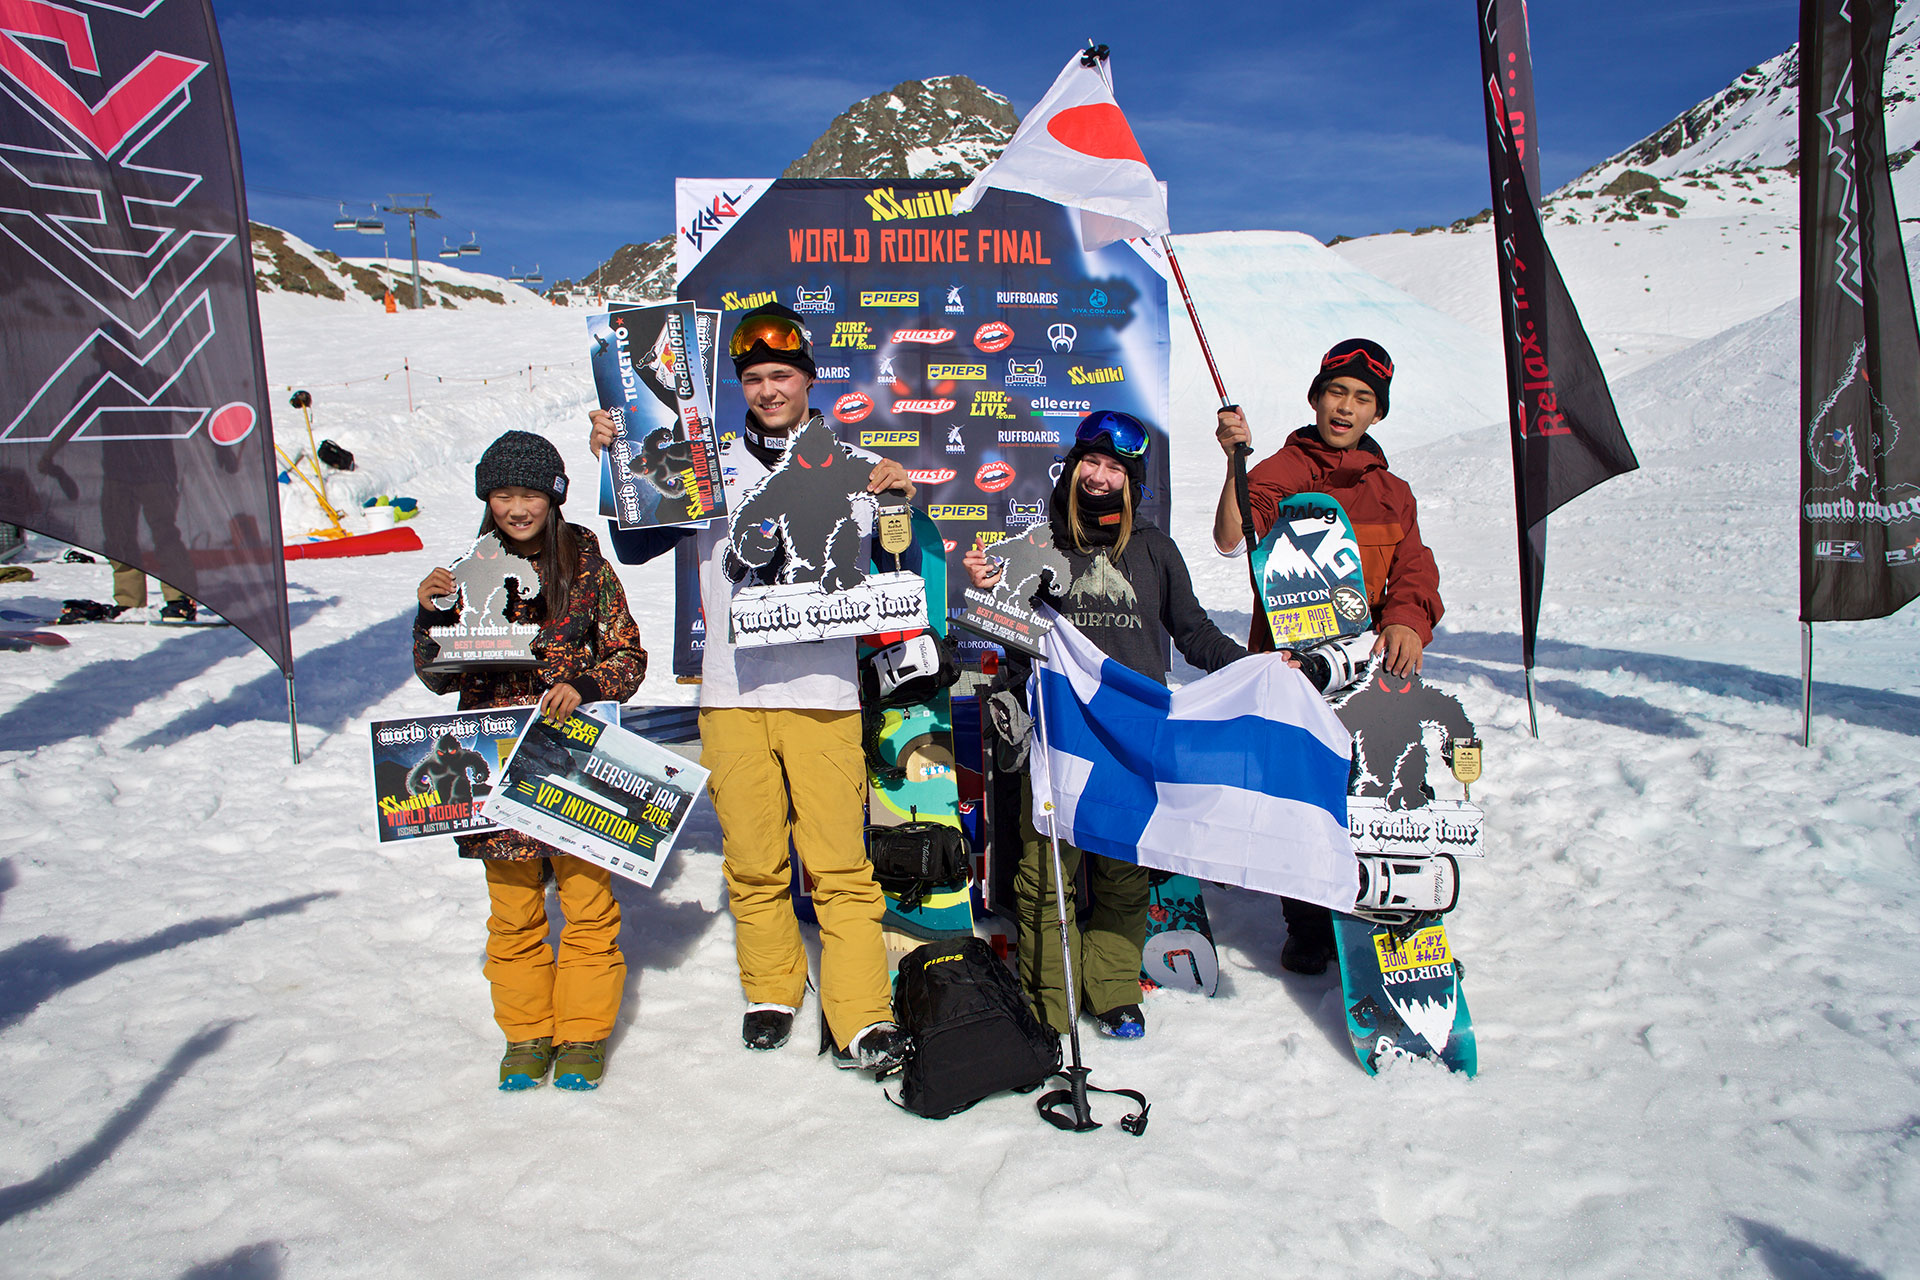 Prime-Snowboarding-Magazine-World-Rookie-Finale-2016-All-Winners-by-Gustav-Ohlsson